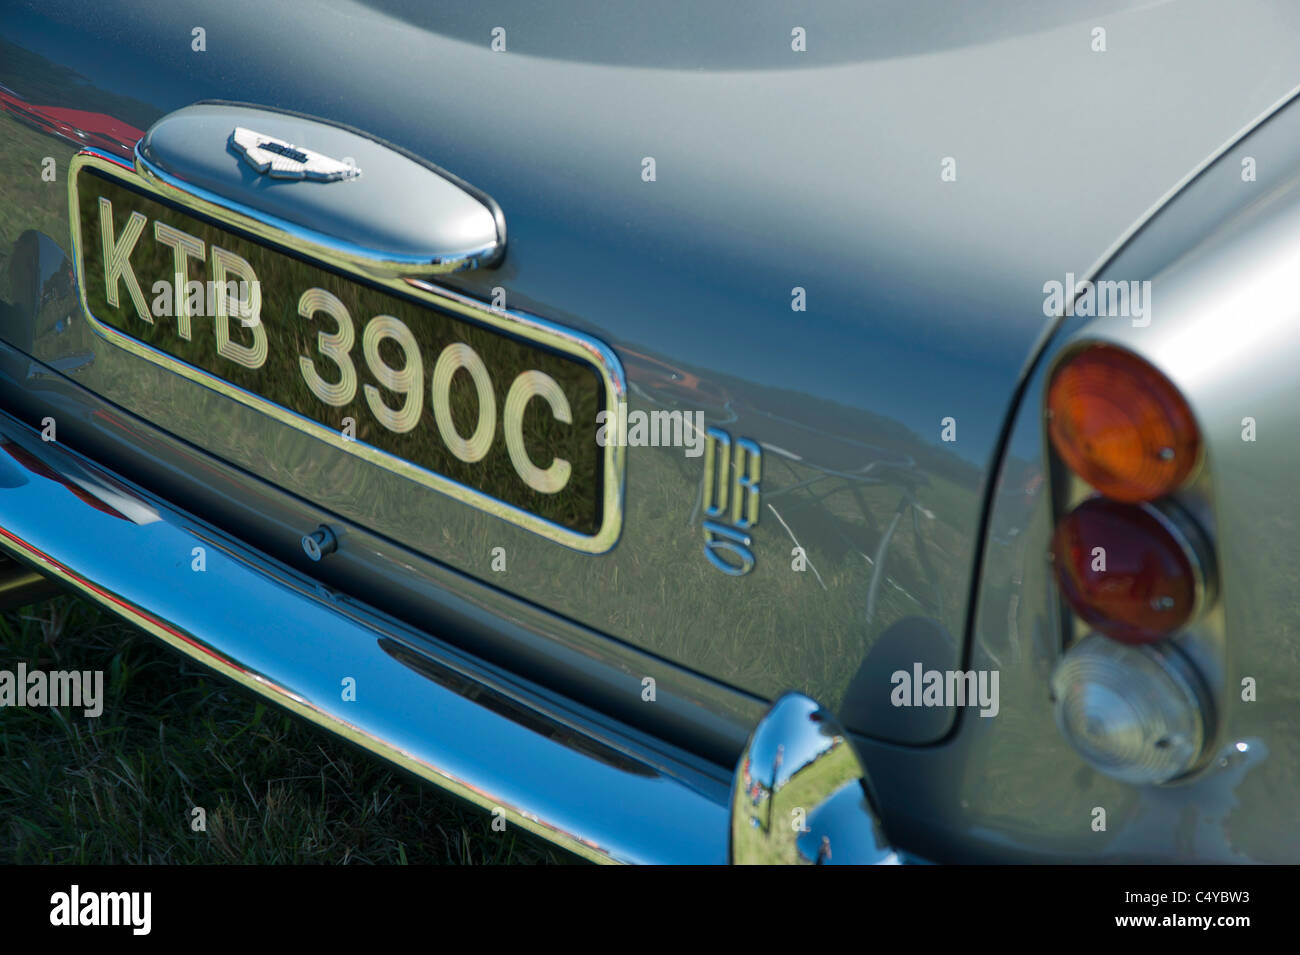 aston martin db5 bond stock photos & aston martin db5 bond stock